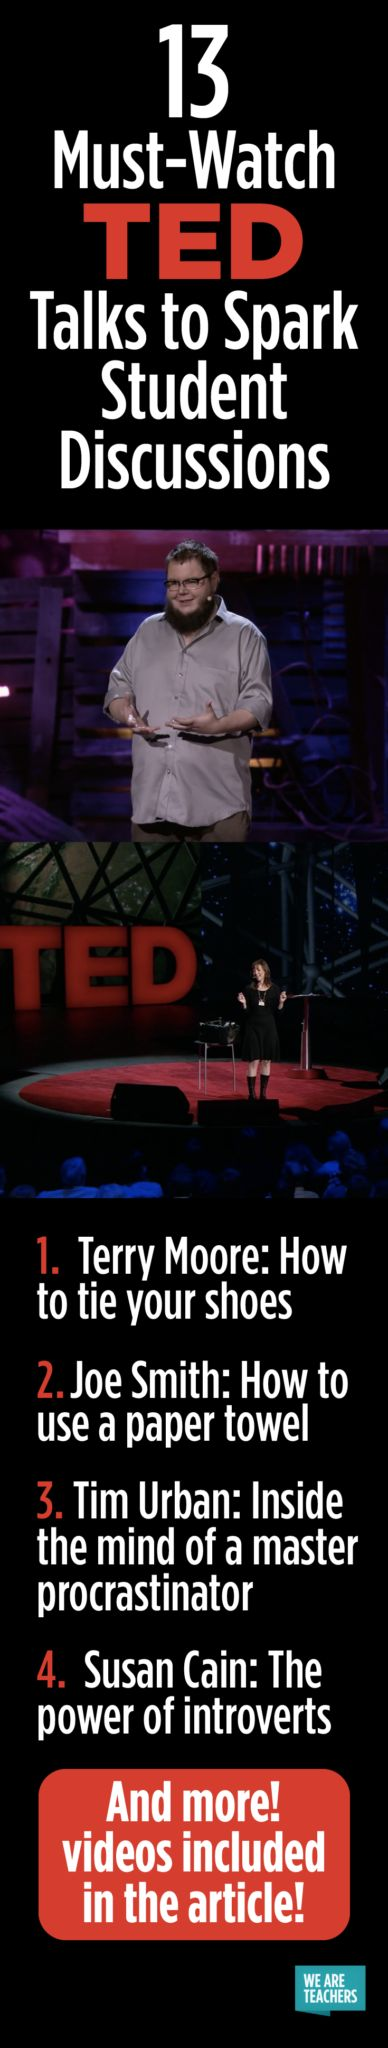 13 Must-Watch TED Talks to Spark Student Discussions - WeAreTeachers